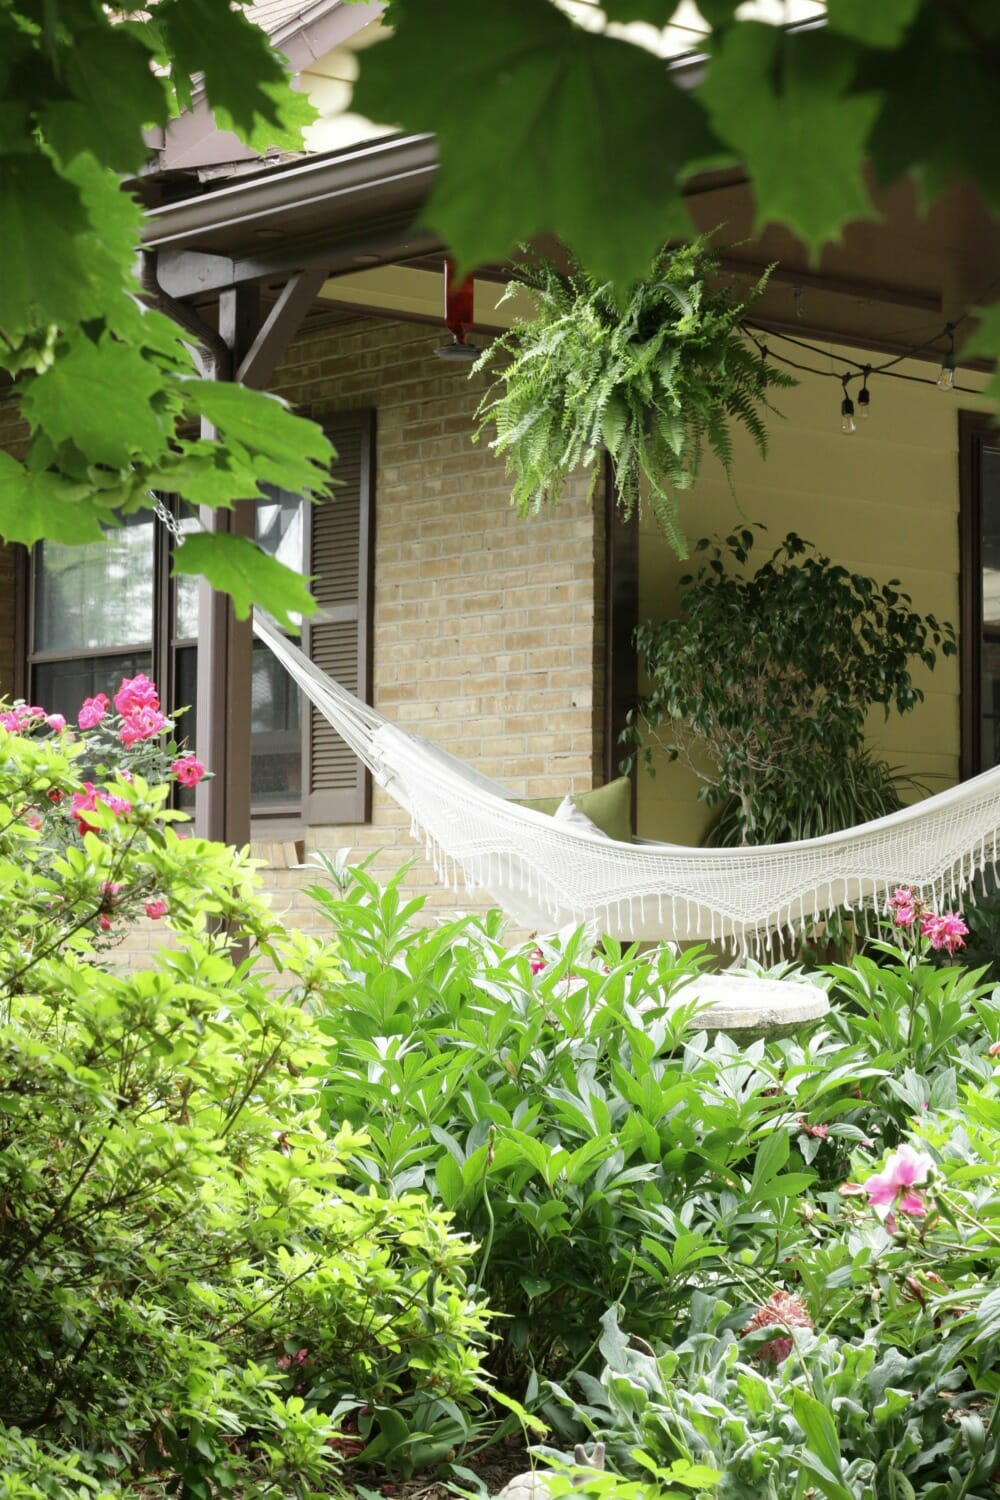 porch photo hammock sleep on structure outdoor hanging relax garden relaxing hang gardening white stock wooden linen backyard